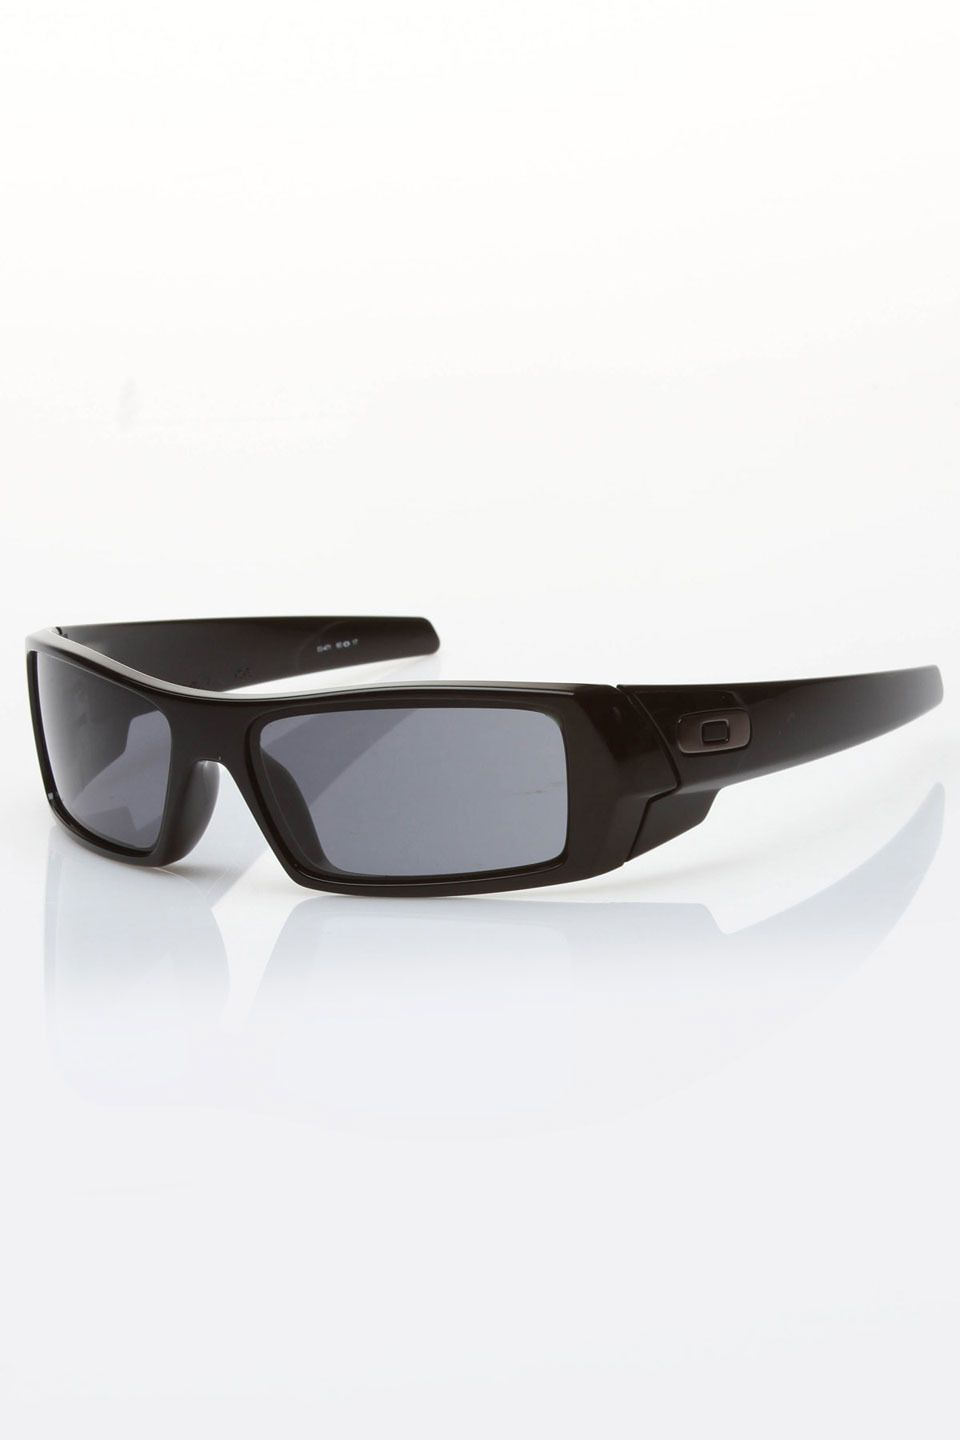 e69722b1d73d3 Oakley Gascan Sunglasses...got these in black and white